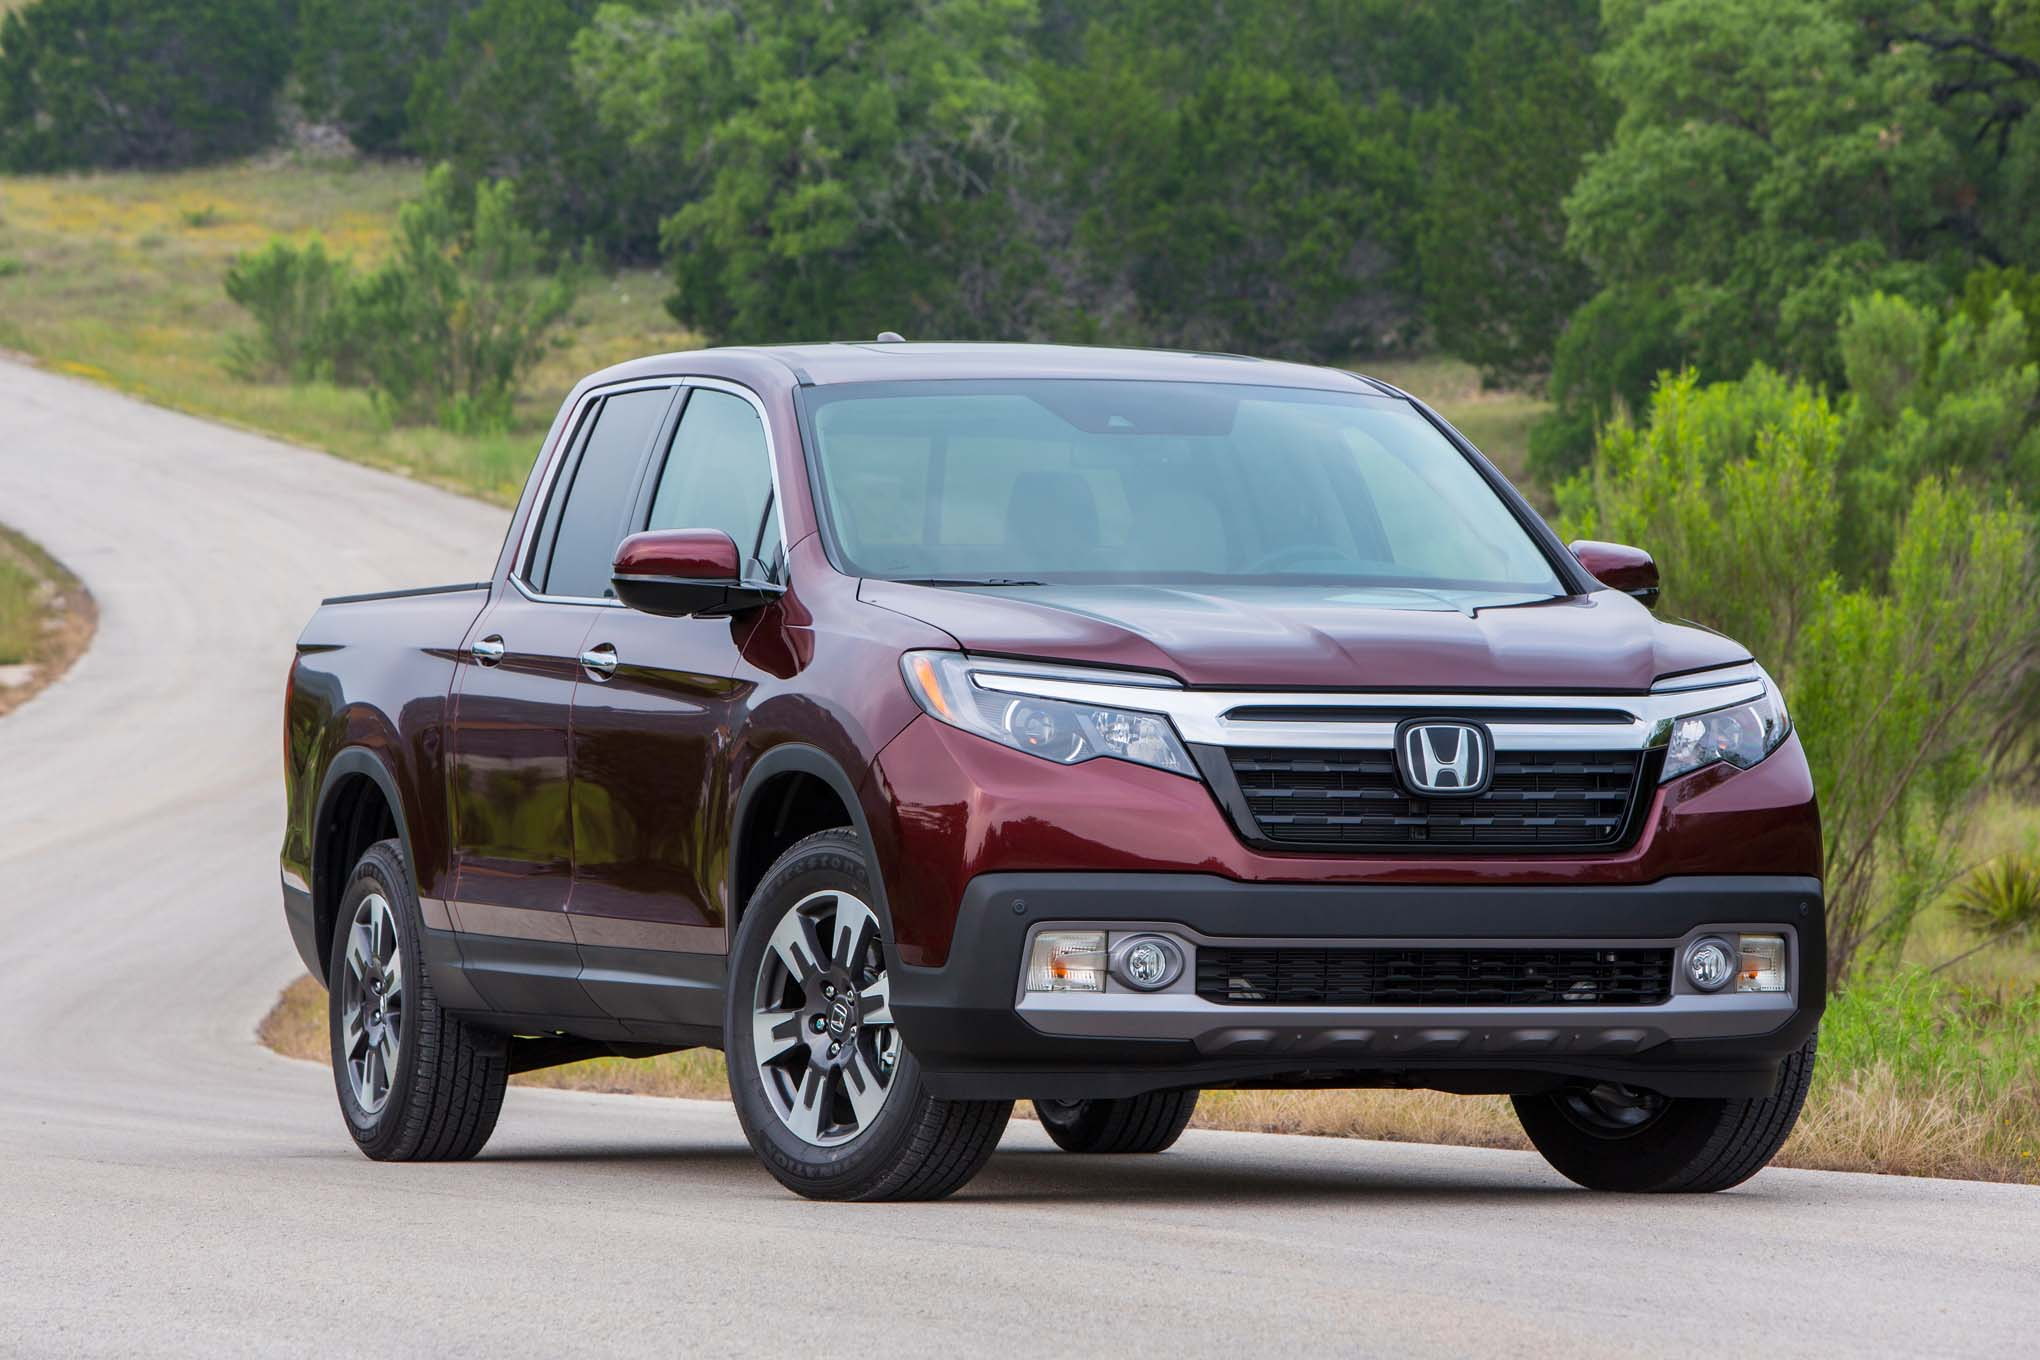 2017 Honda Ridgeline Review